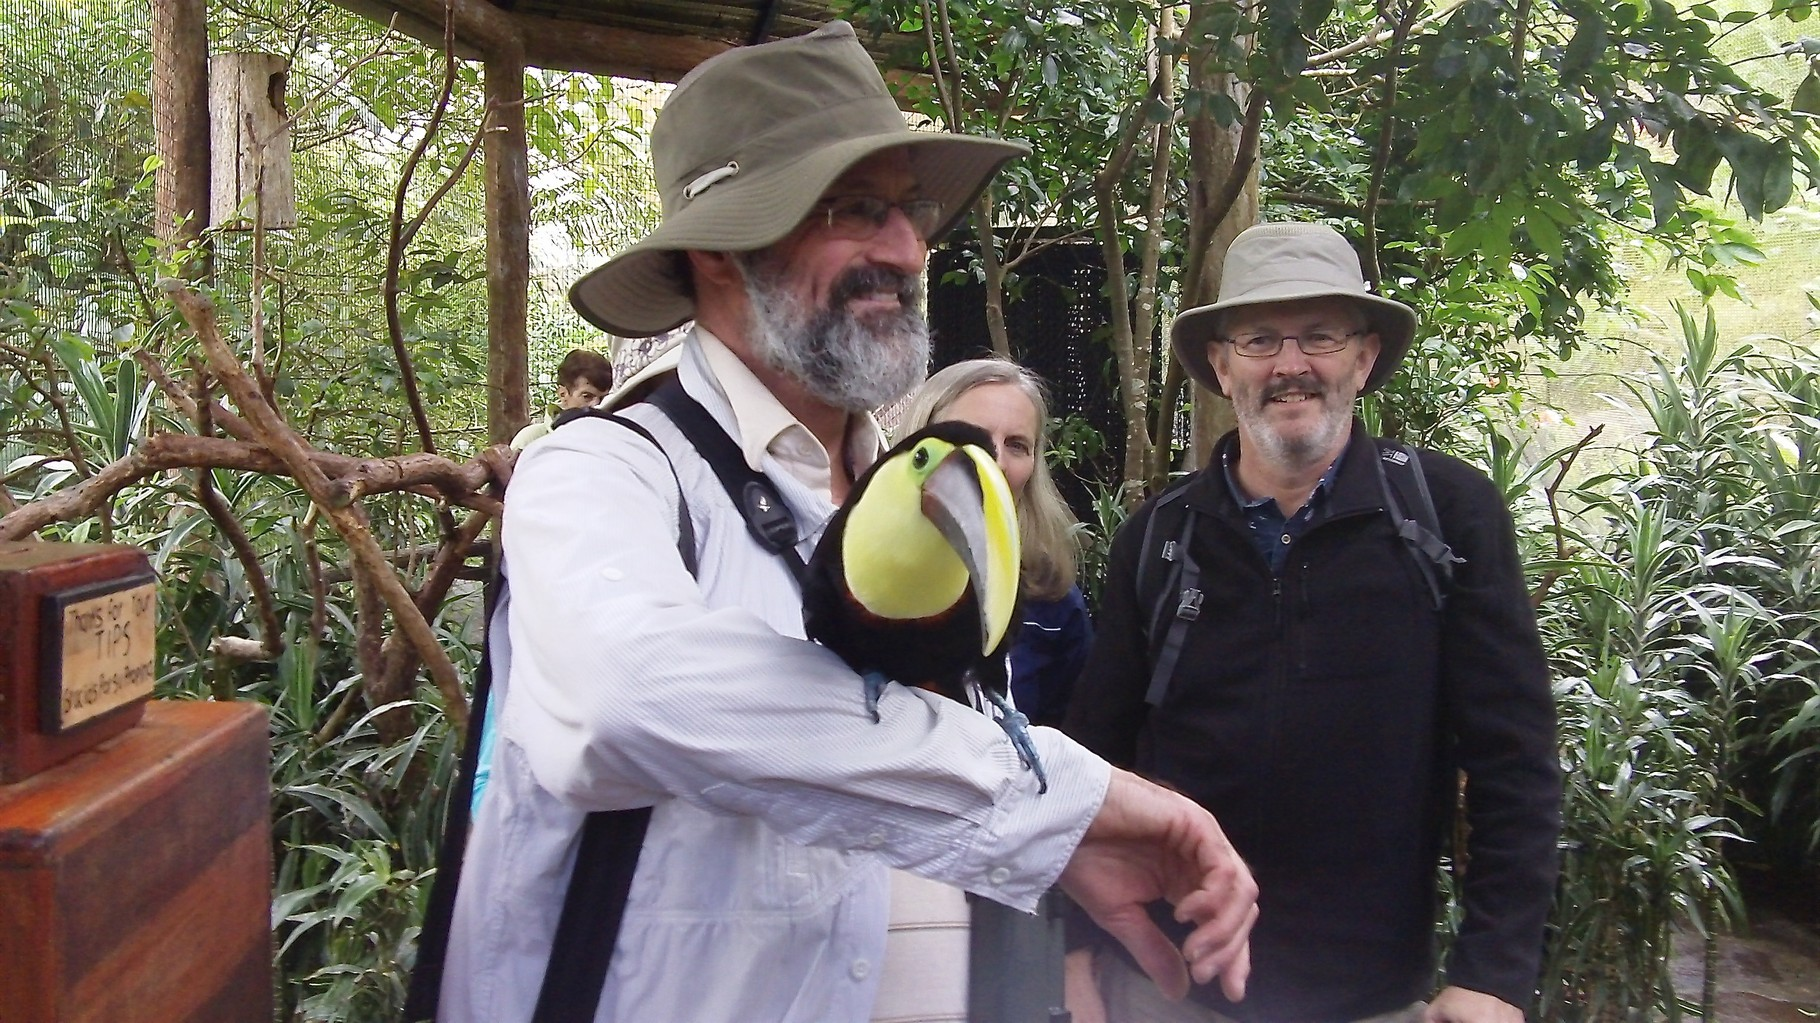 Rich Neubig with toucan